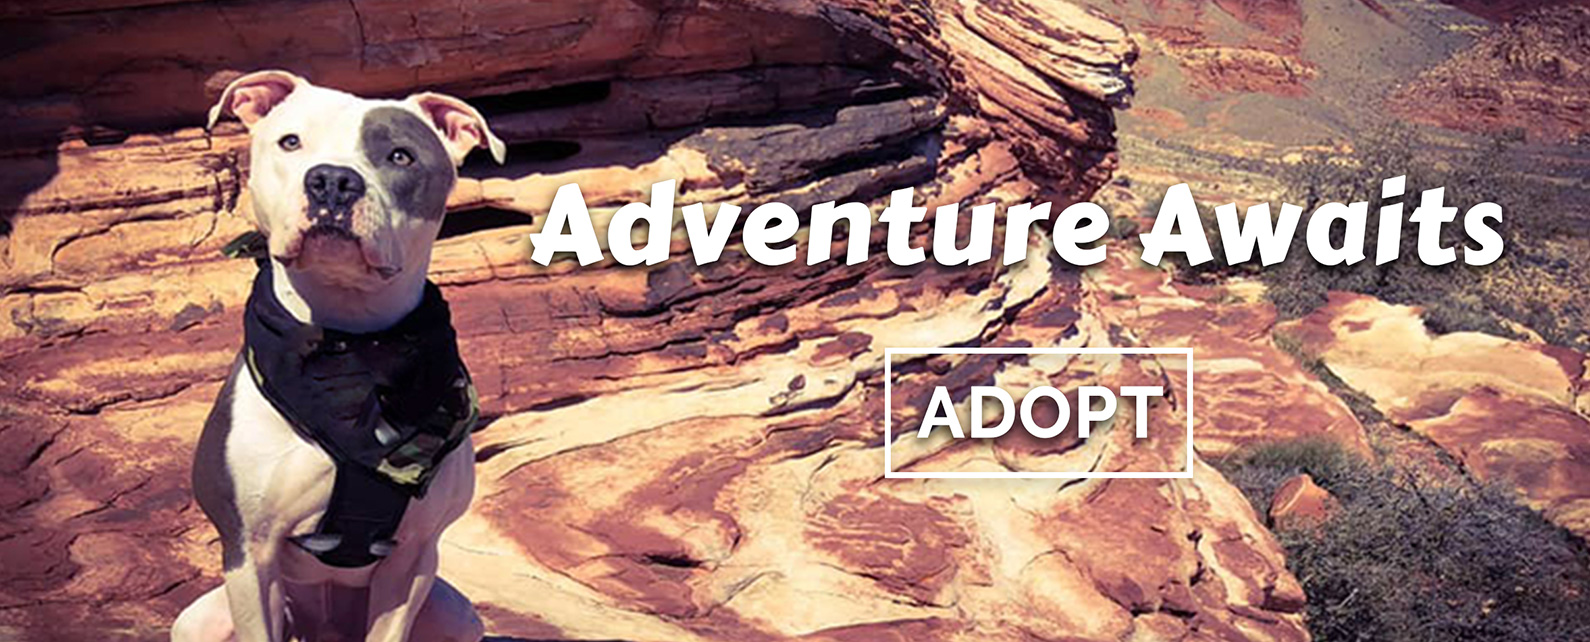 Adventure Awaits - ADOPT